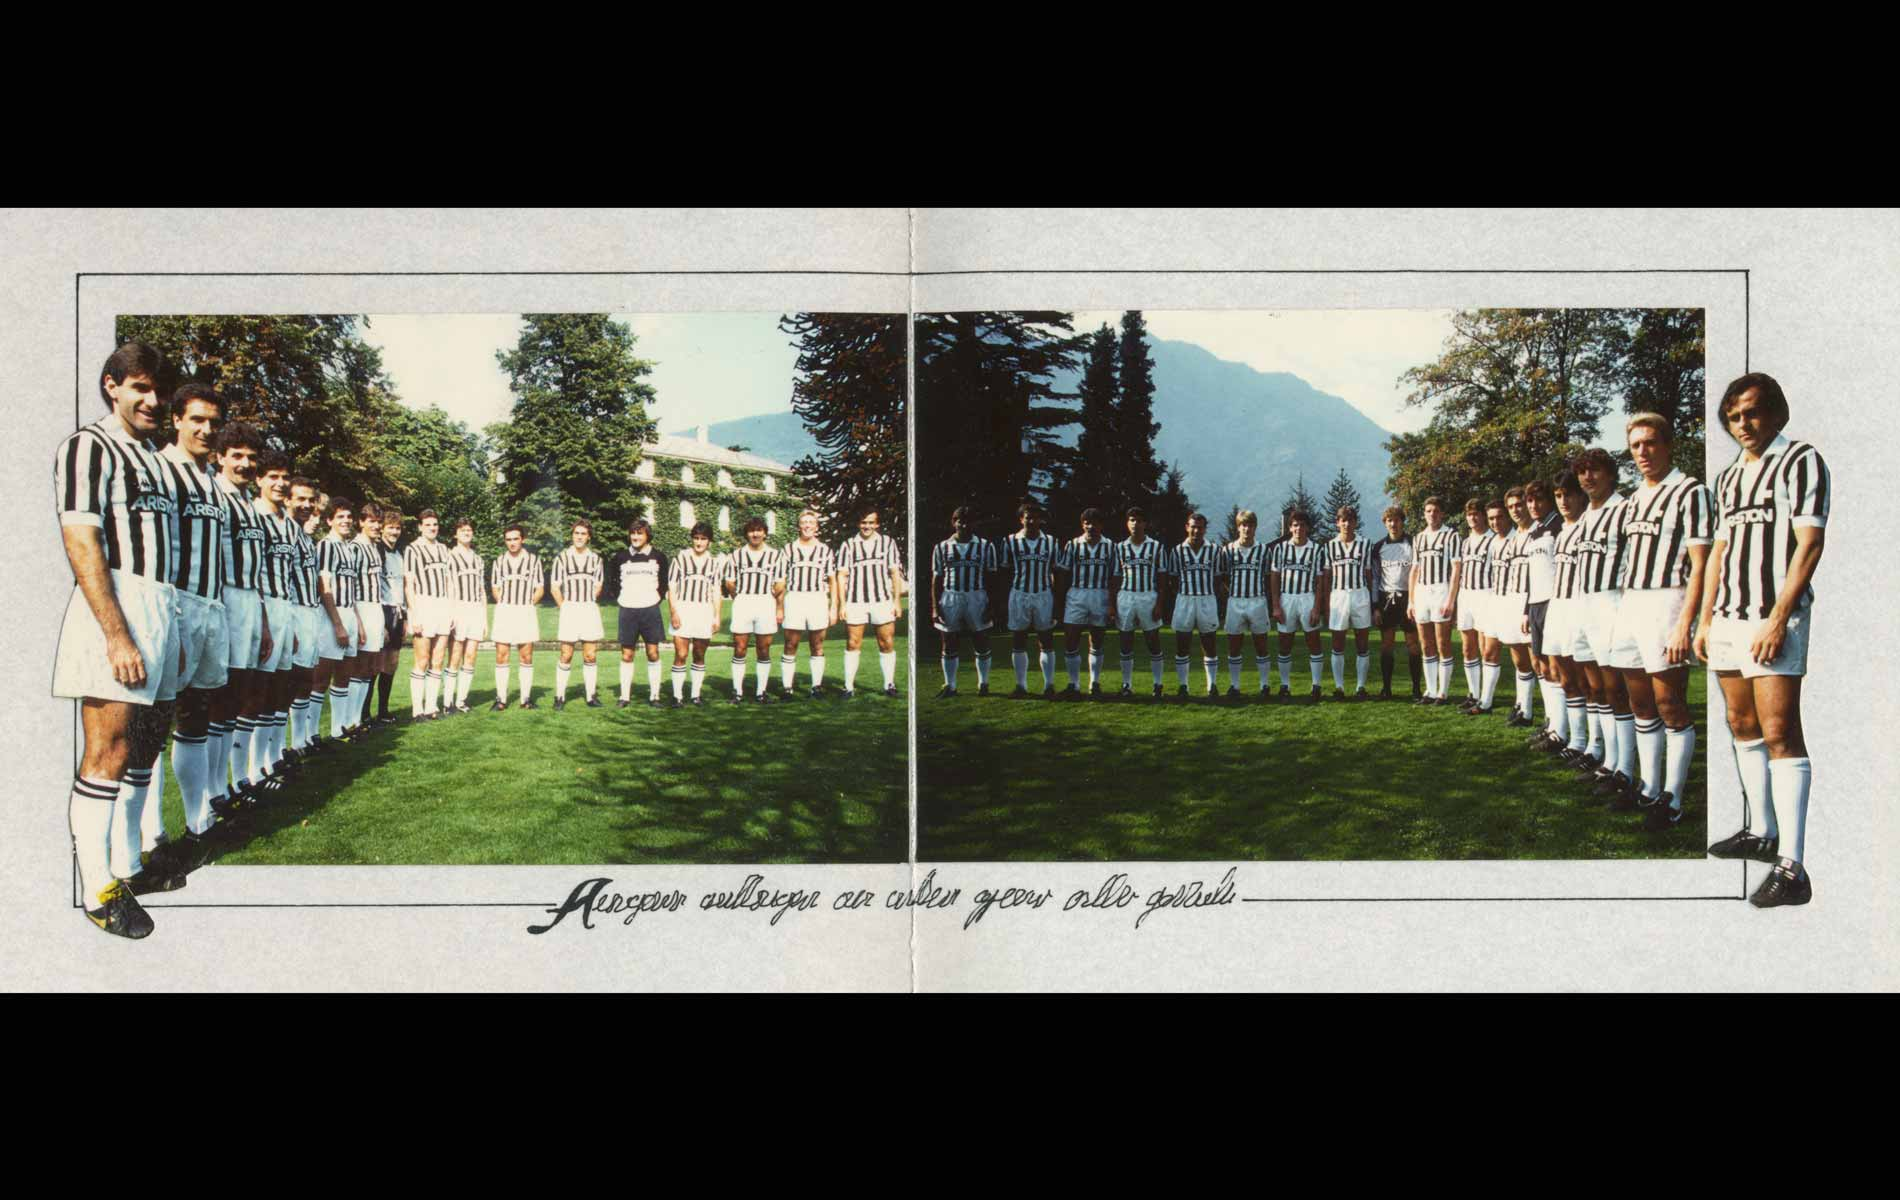 FIAT JUVENTUS - GREETINGS CARDS 1986 x Avv.Giovanni AGNELLI with JUVENTUS Football Team - © Graziano Villa